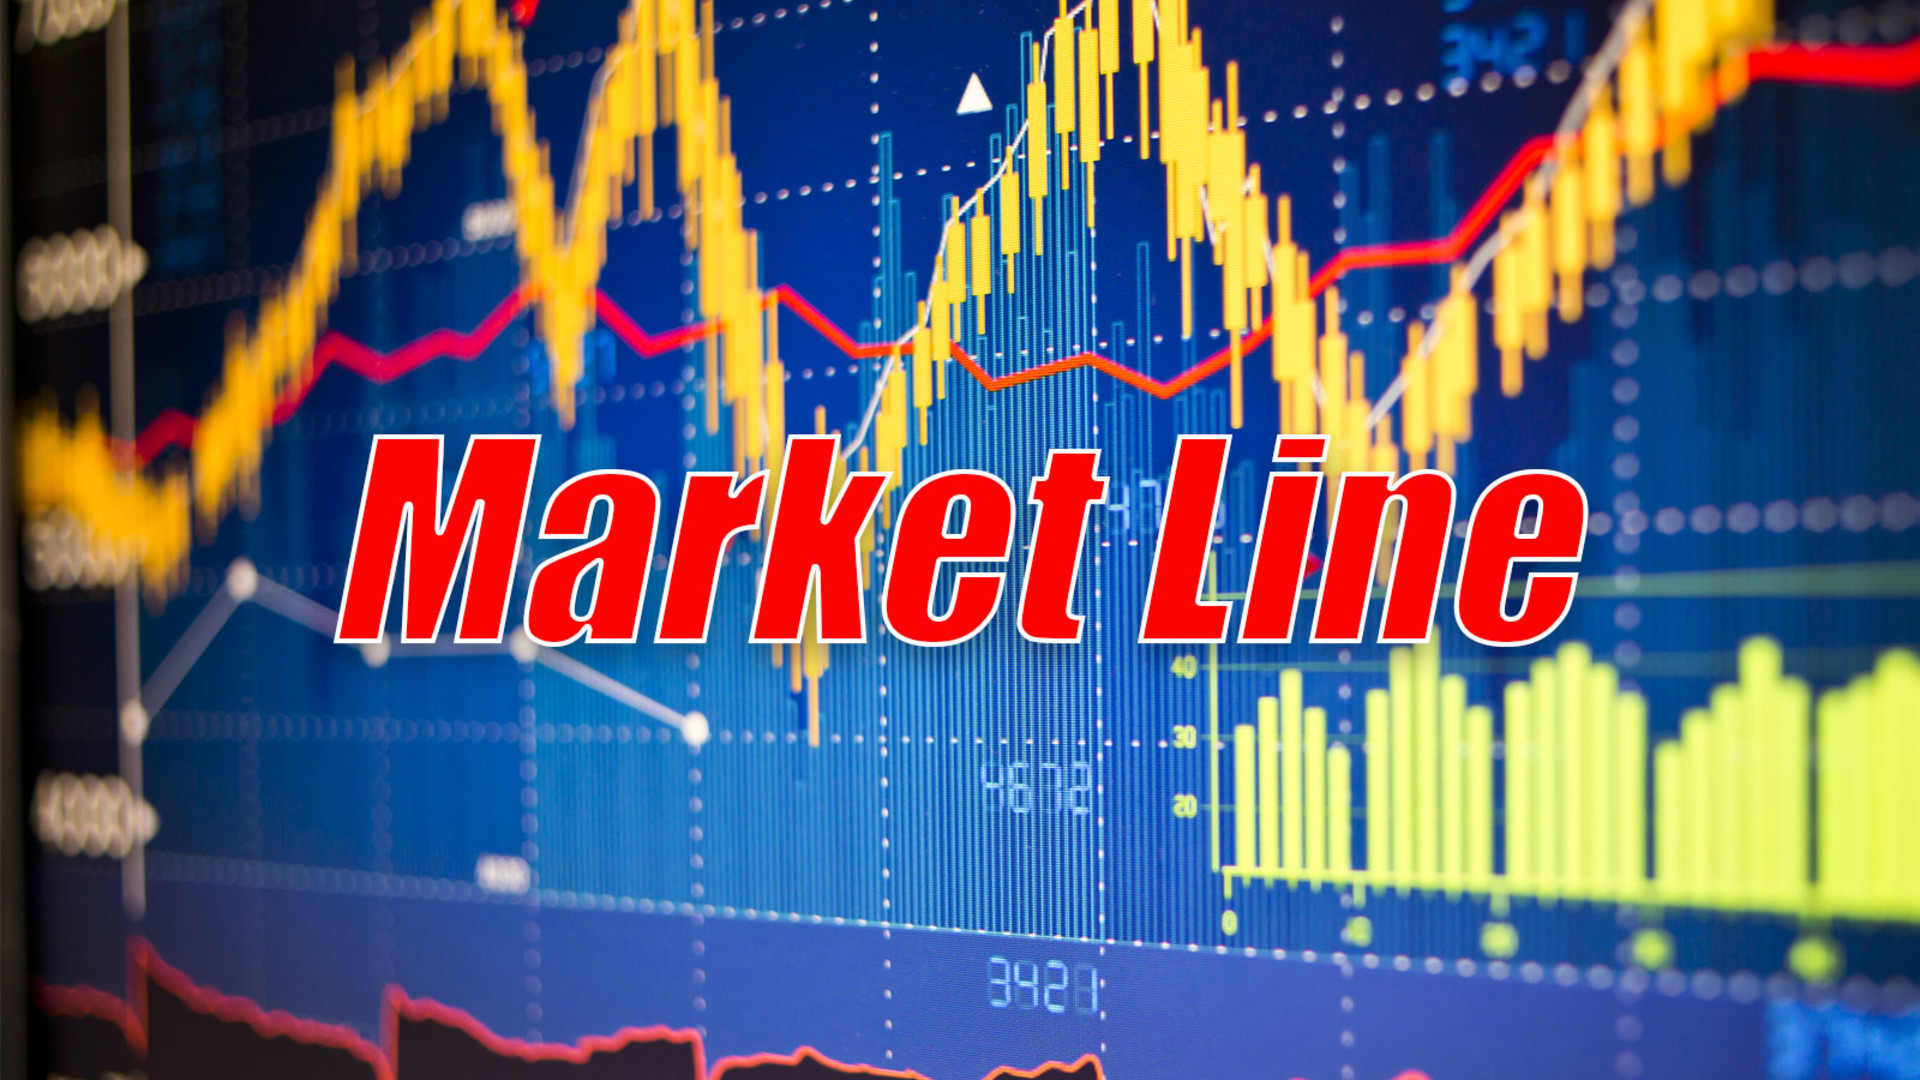 Marketline Report for Thursday, September 12th